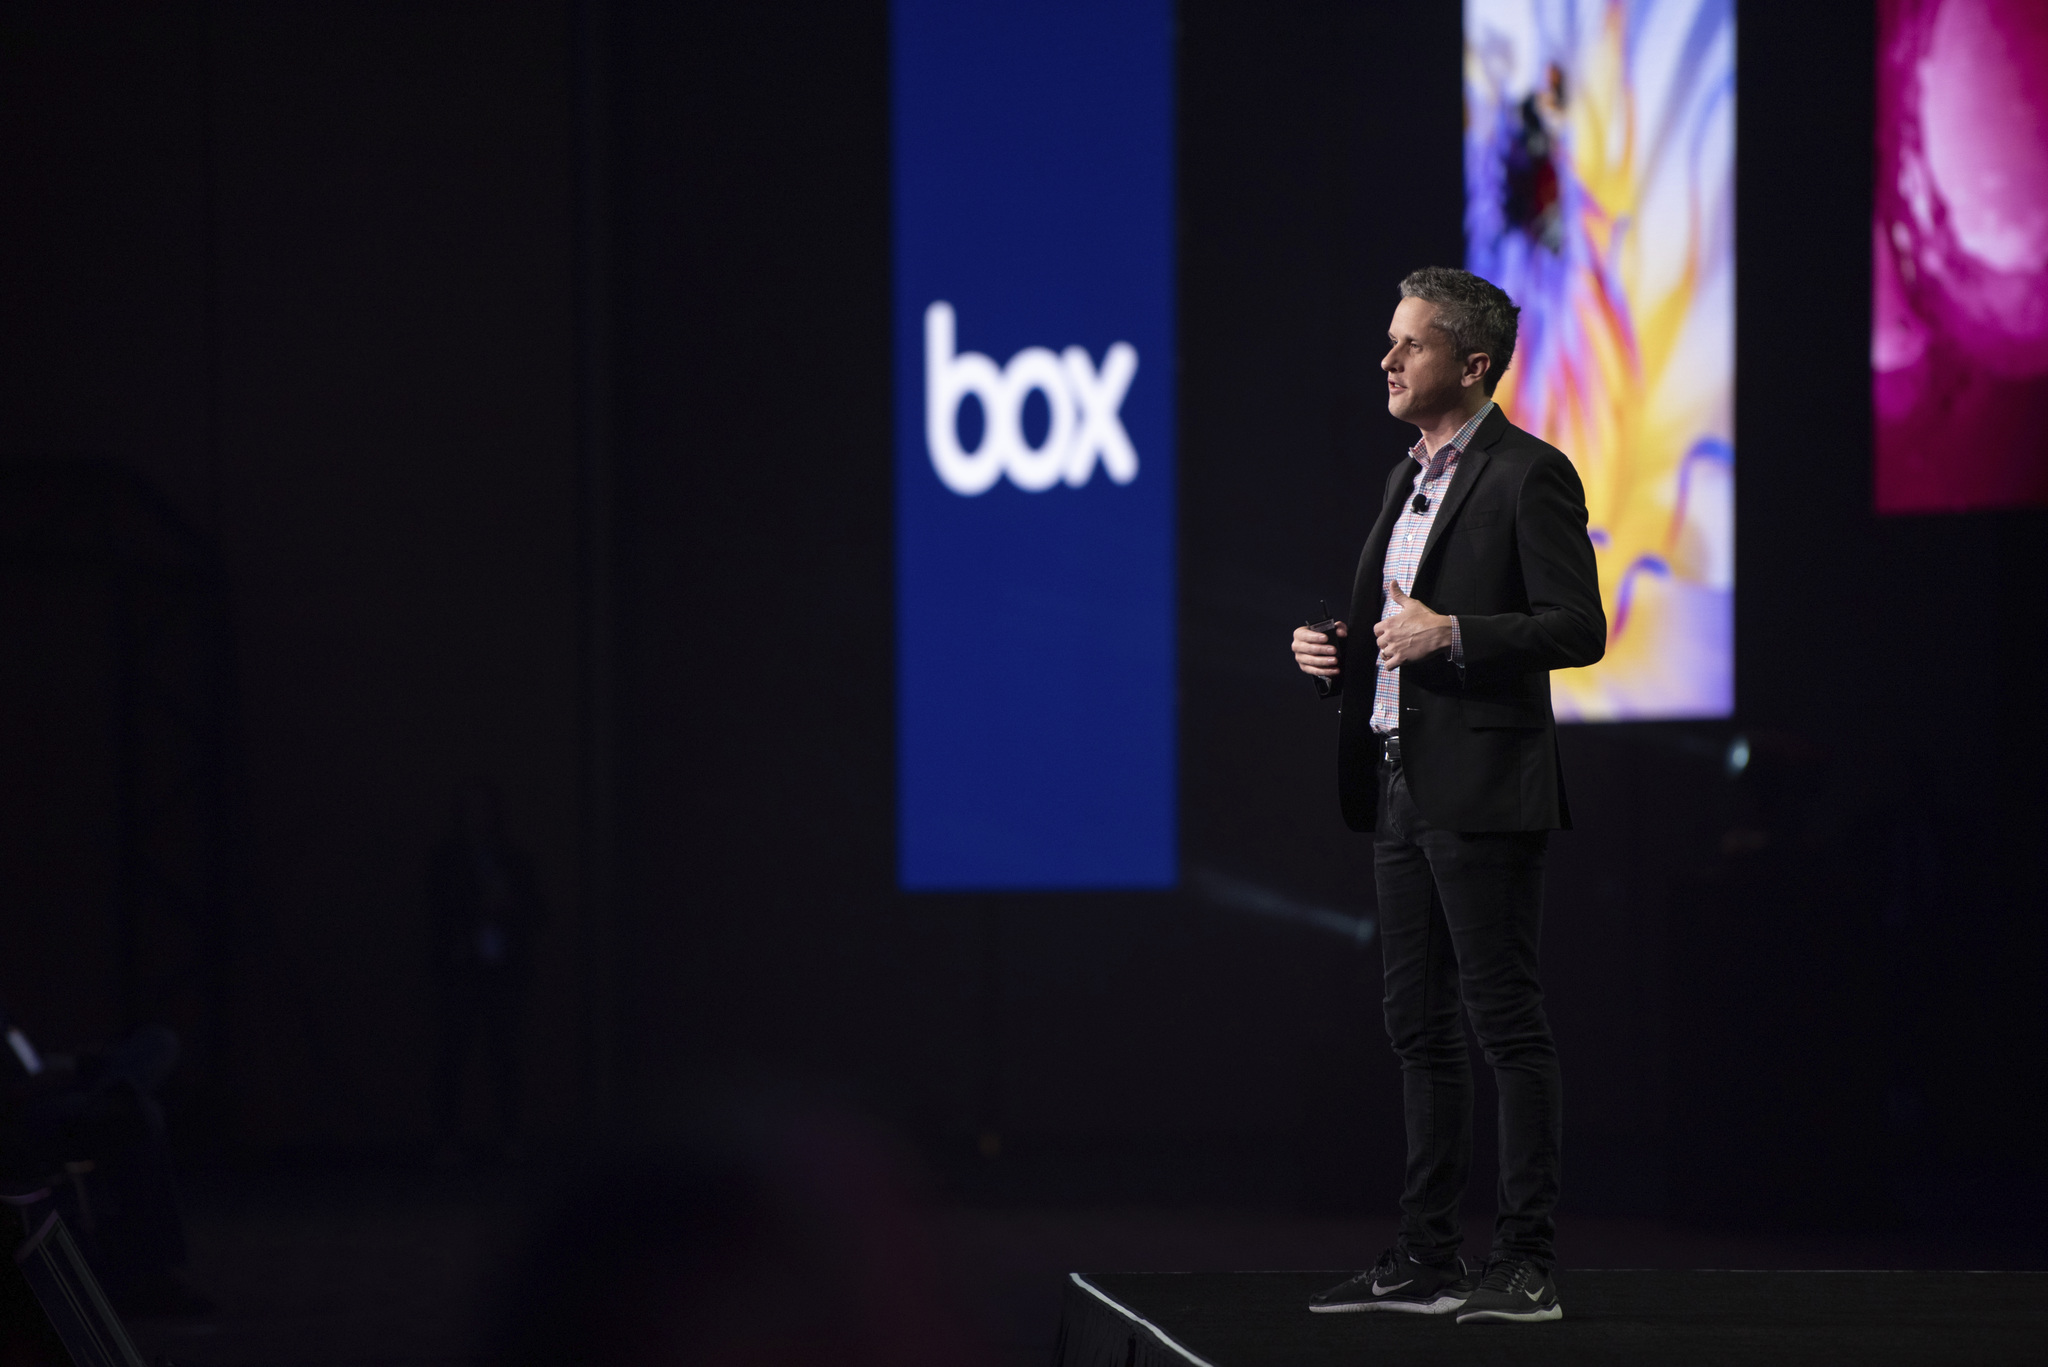 Aaron Levie CEO of Box on stage in front of Box logo.